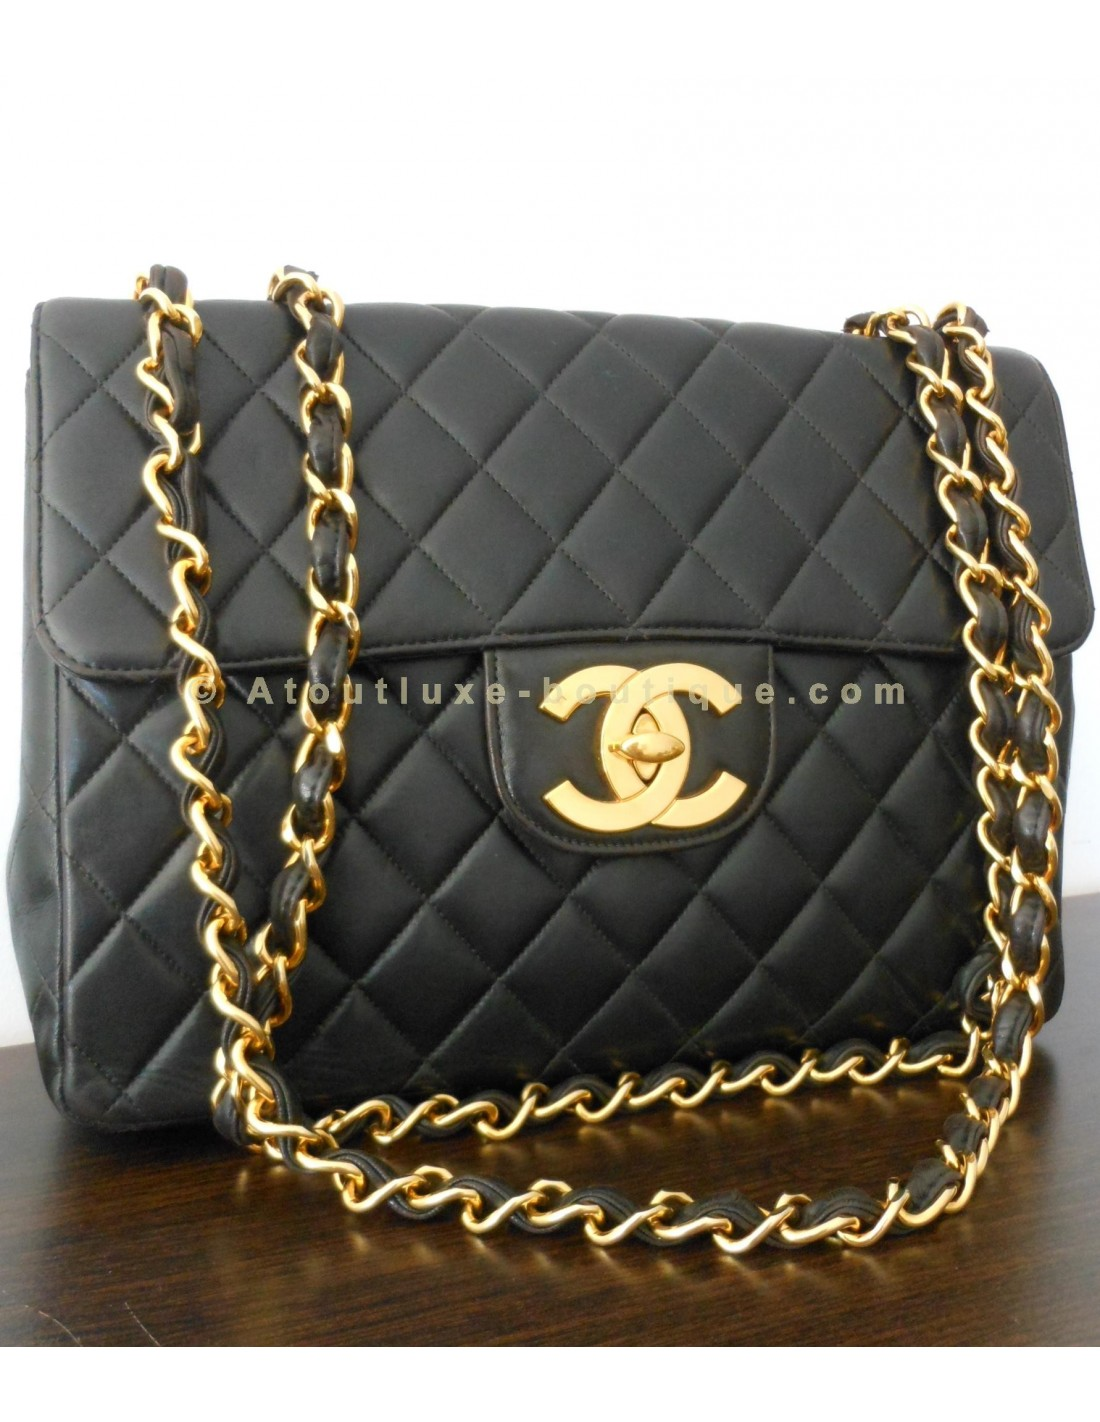 Sac chanel mademoiselle grand modele atoutluxe boutique for Sac chanel interieur